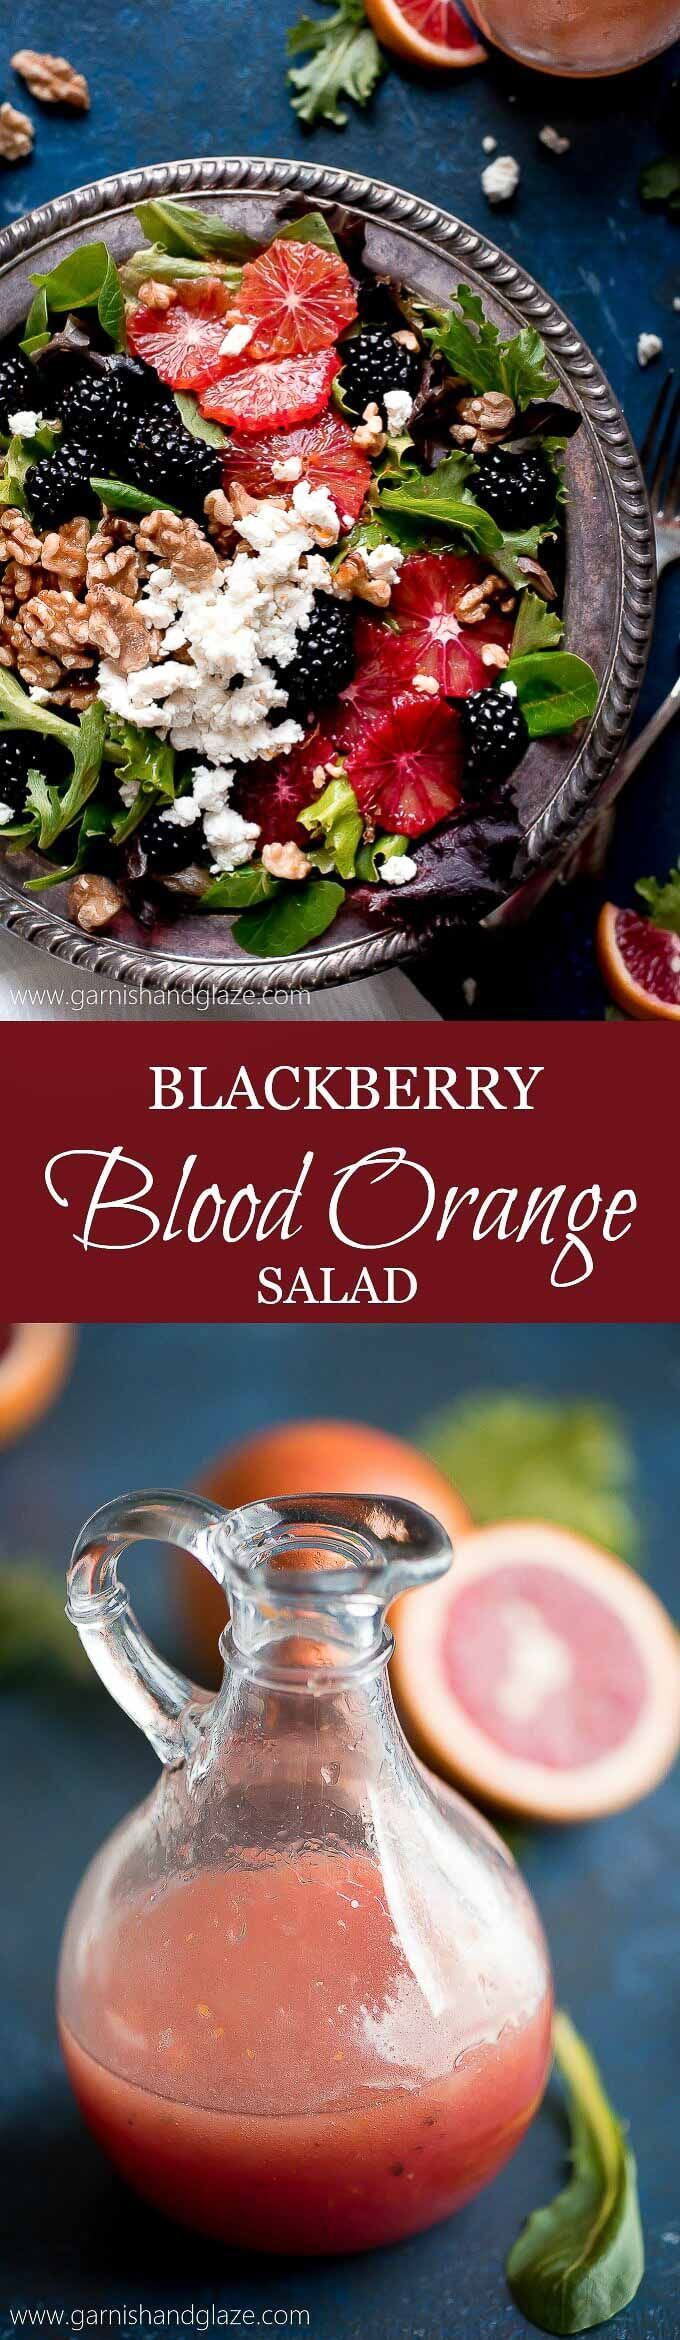 Grab a bowl of this BLACKBERRY BLOOD ORANGE SALAD with blood orange vinaigrette, creamy goat cheese, and toasted walnuts for a healthy and refreshing lunch!